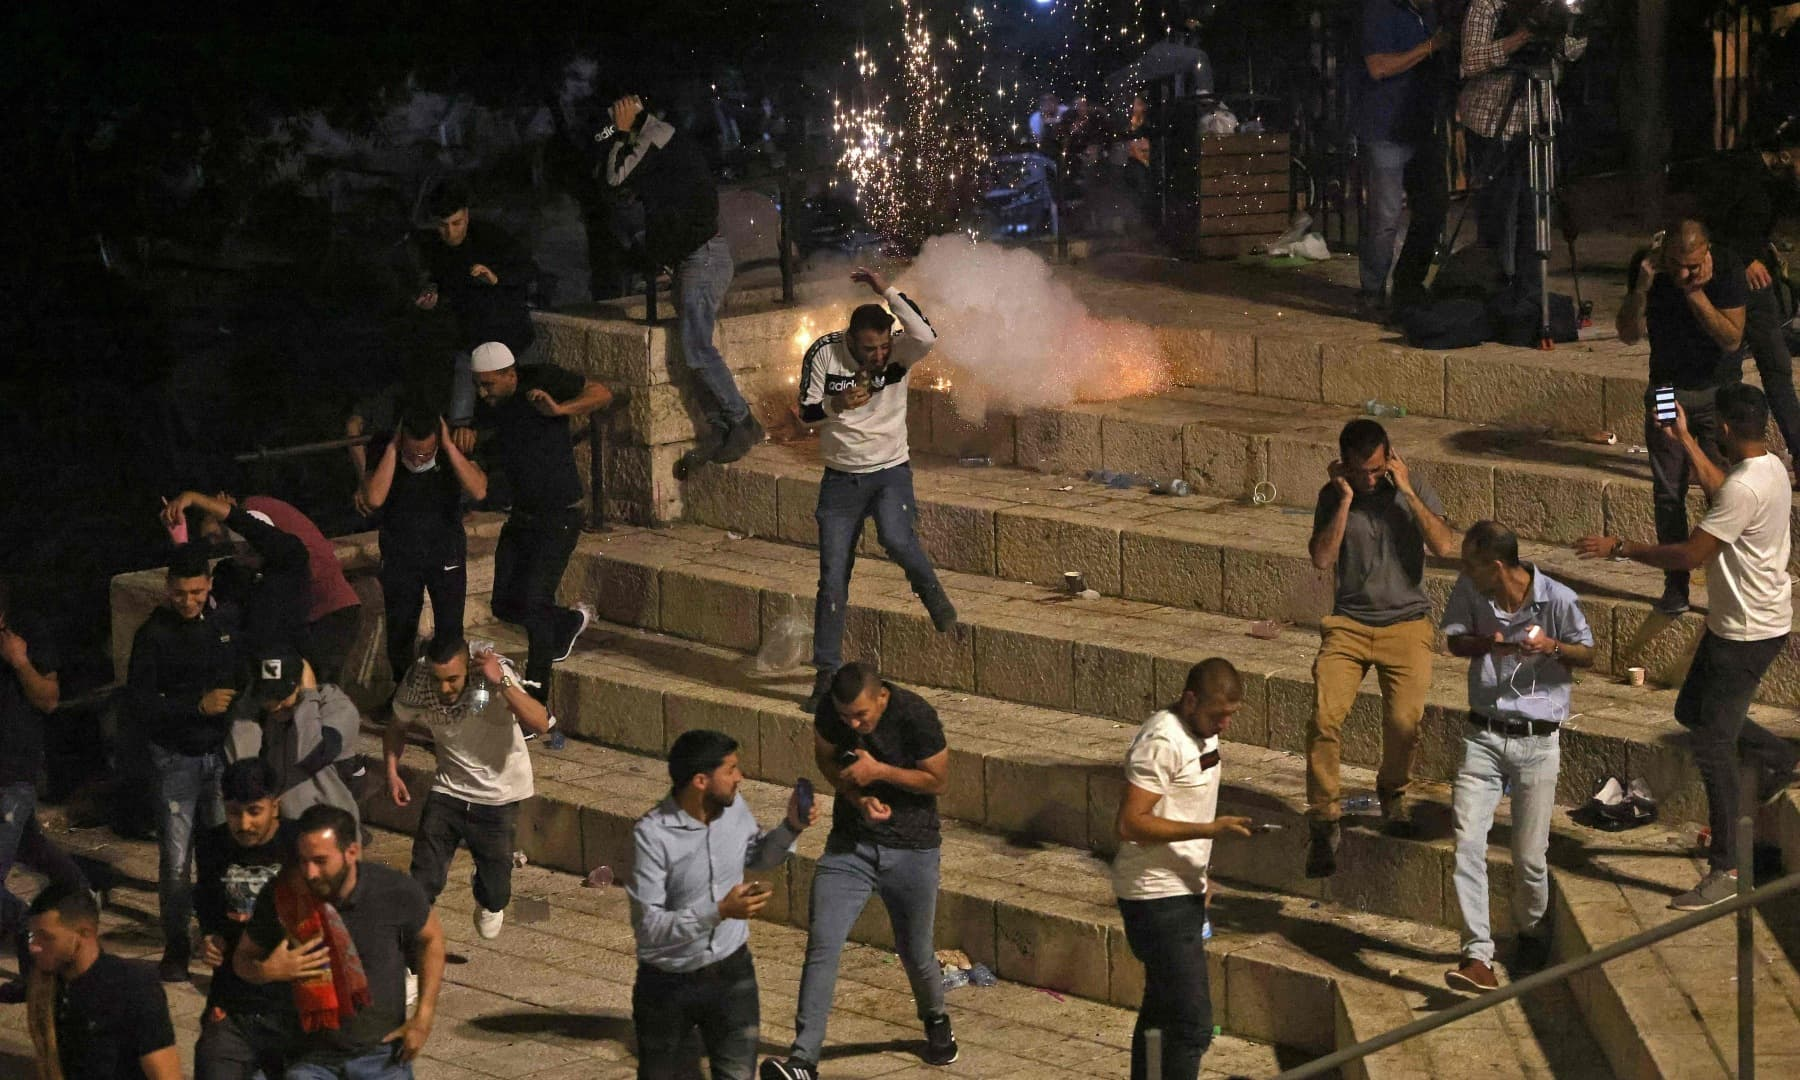 Palestinian protesters run from stun grenades fired by Israeli security forces outside the Damascus Gate in Jerusalem's Old City on May 8, 2021. — AFP